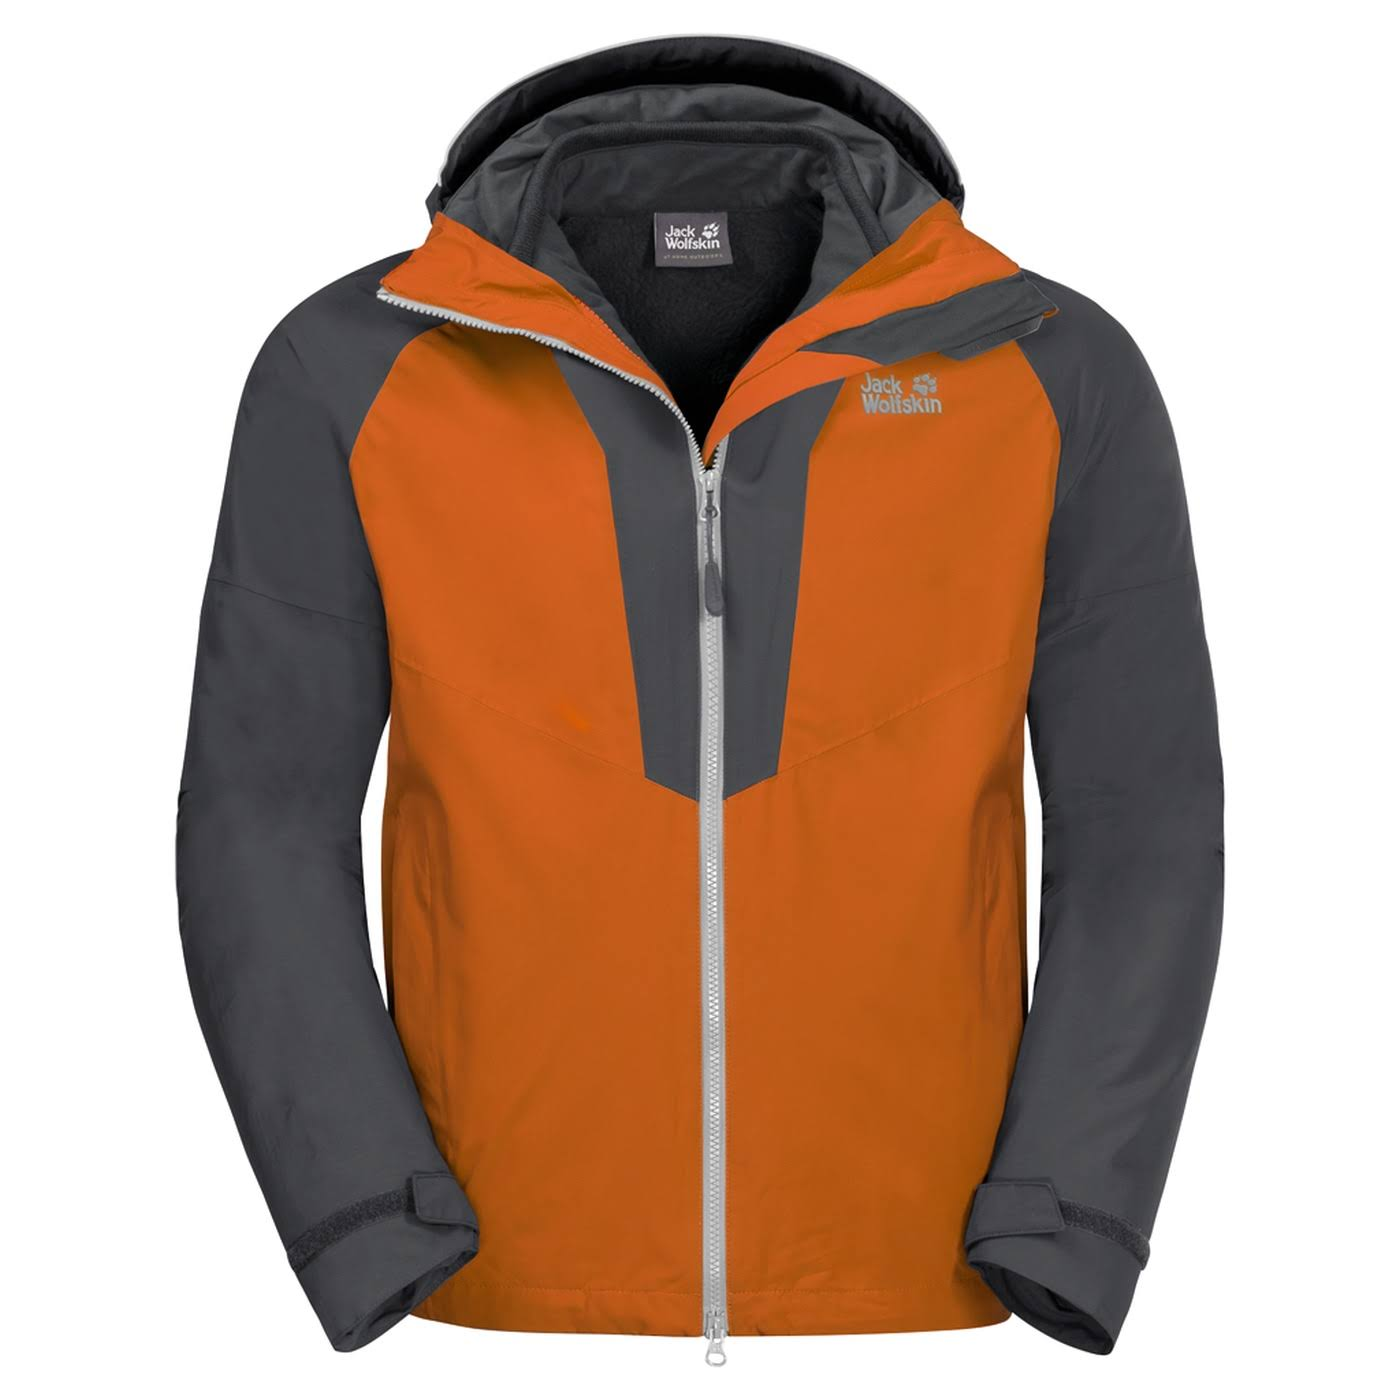 Wolfskin Jacke Apex Jack Orange Regular Peak Desert Herren 3in1 ZqAawpv